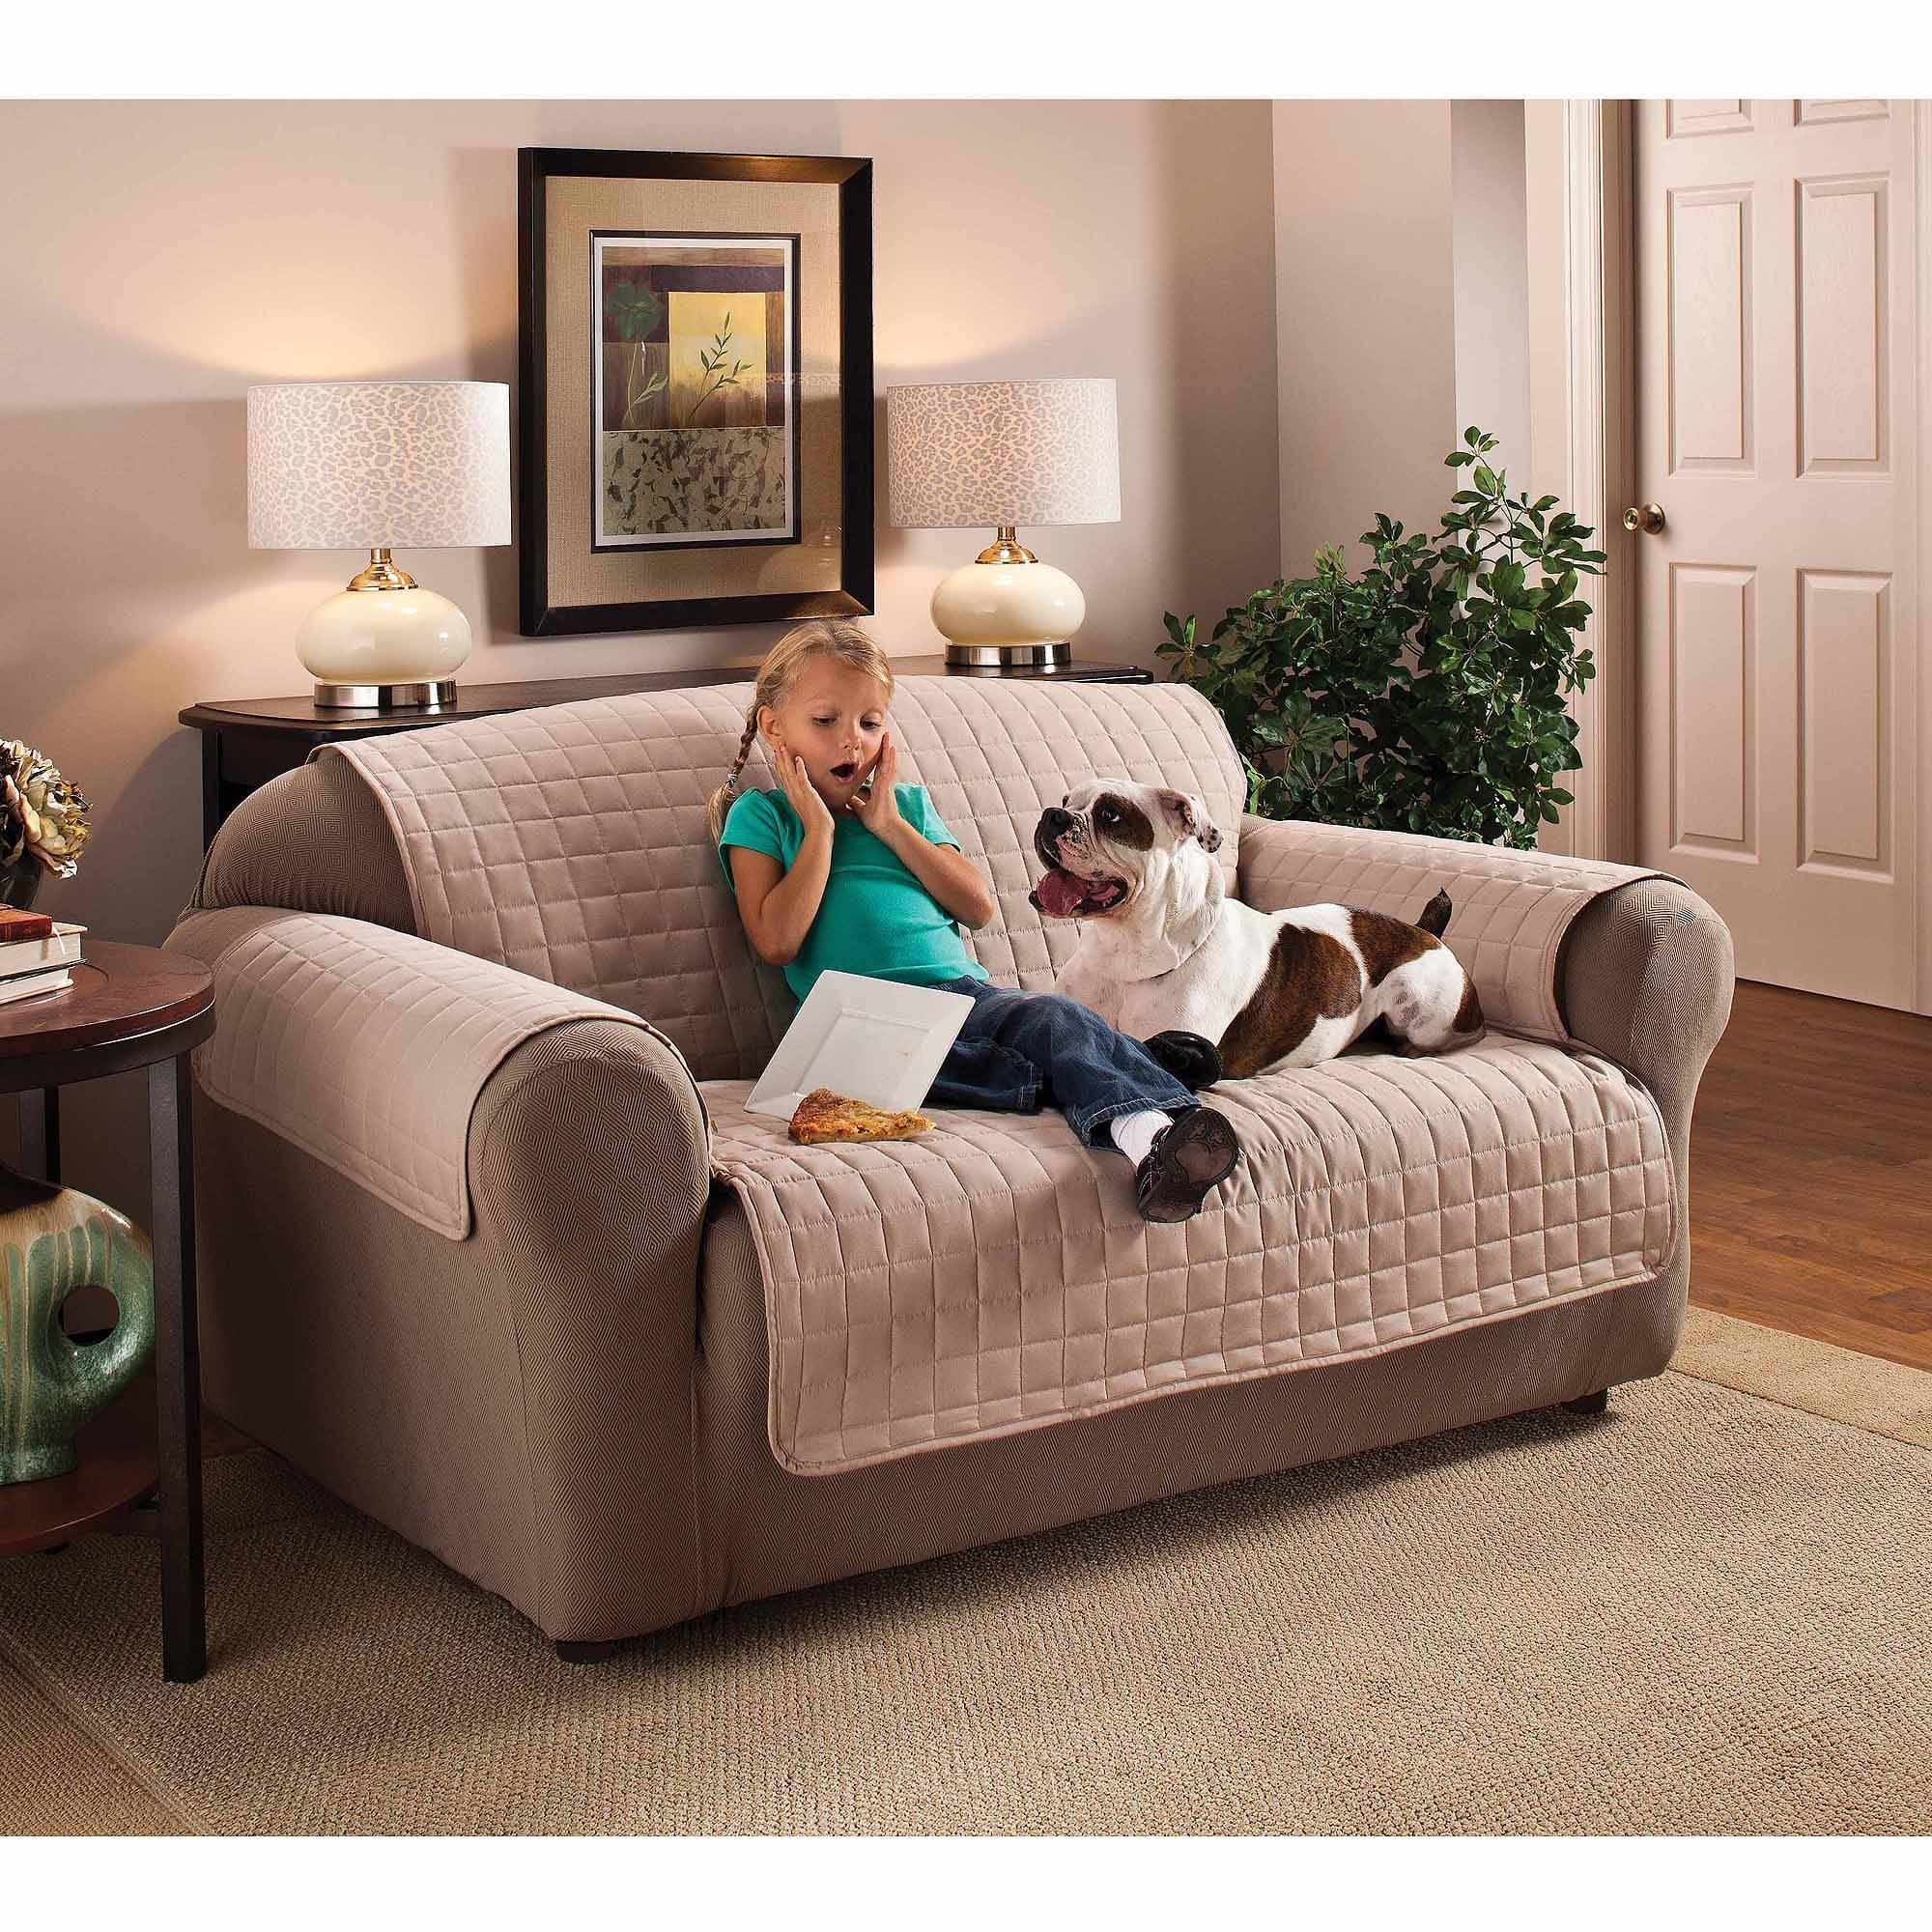 Furniture: Couch Covers At Walmart To Make Your Furniture Stylish pertaining to Covers for Sofas (Image 11 of 30)